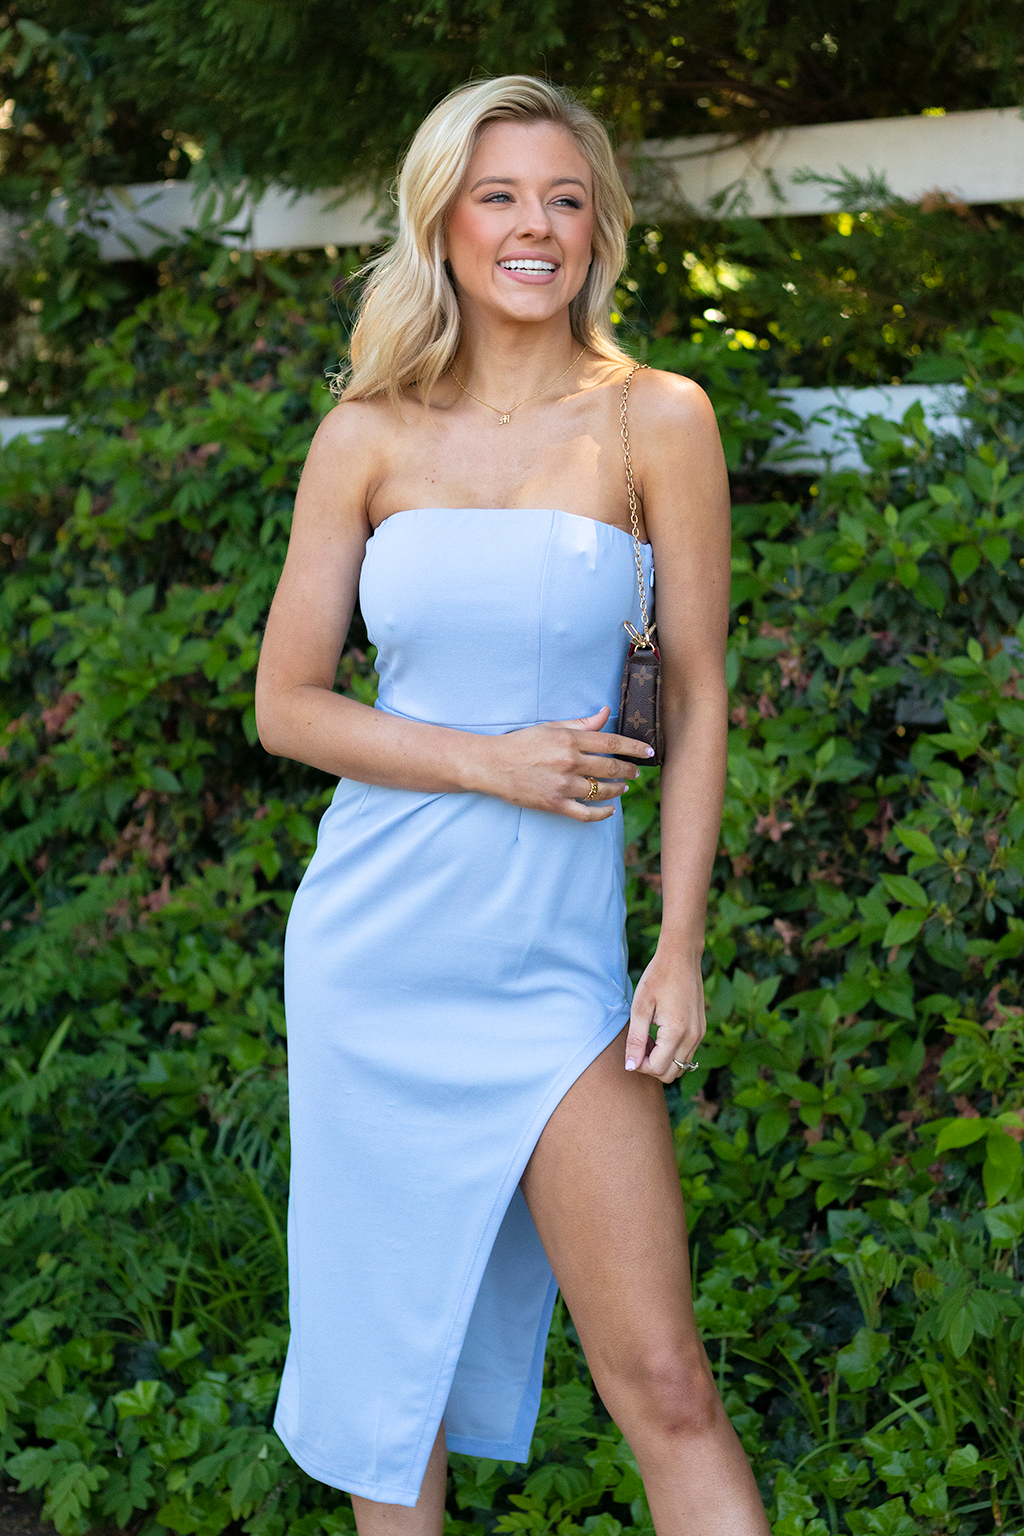 COME ON!! THIS DRESS IS TOO GOOD TO BE TRUE, ITS LITERALLY THE MOST FLATTERING MIDI STRAPLESS DRESS WE EVER DID SEE, PERFECT FOR DATE NIGHTS, EVENTS, AND WEDDINGS!! -Taylor is wearing the small -color: powder blue -strapless  -midi length  -slight slit